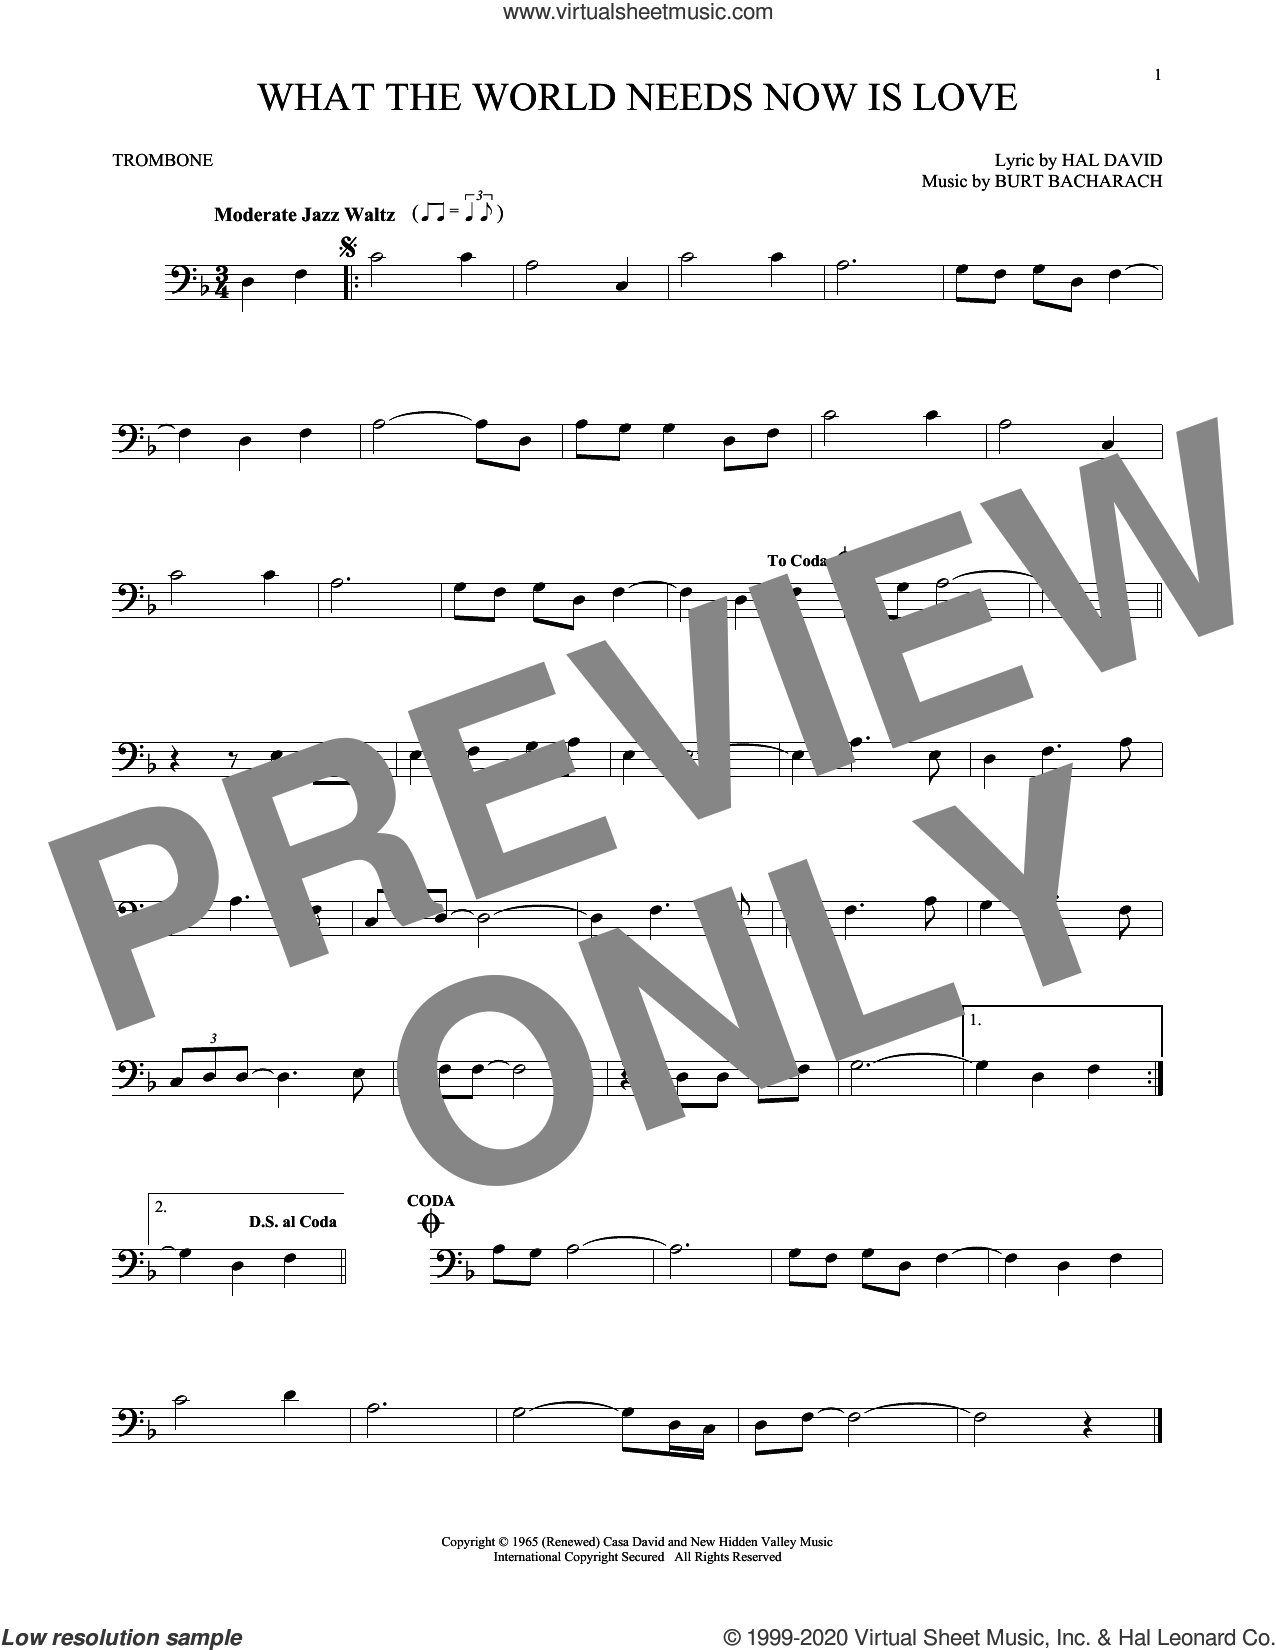 What The World Needs Now Is Love sheet music for trombone solo by Bacharach & David, Jackie DeShannon, Burt Bacharach and Hal David, intermediate skill level